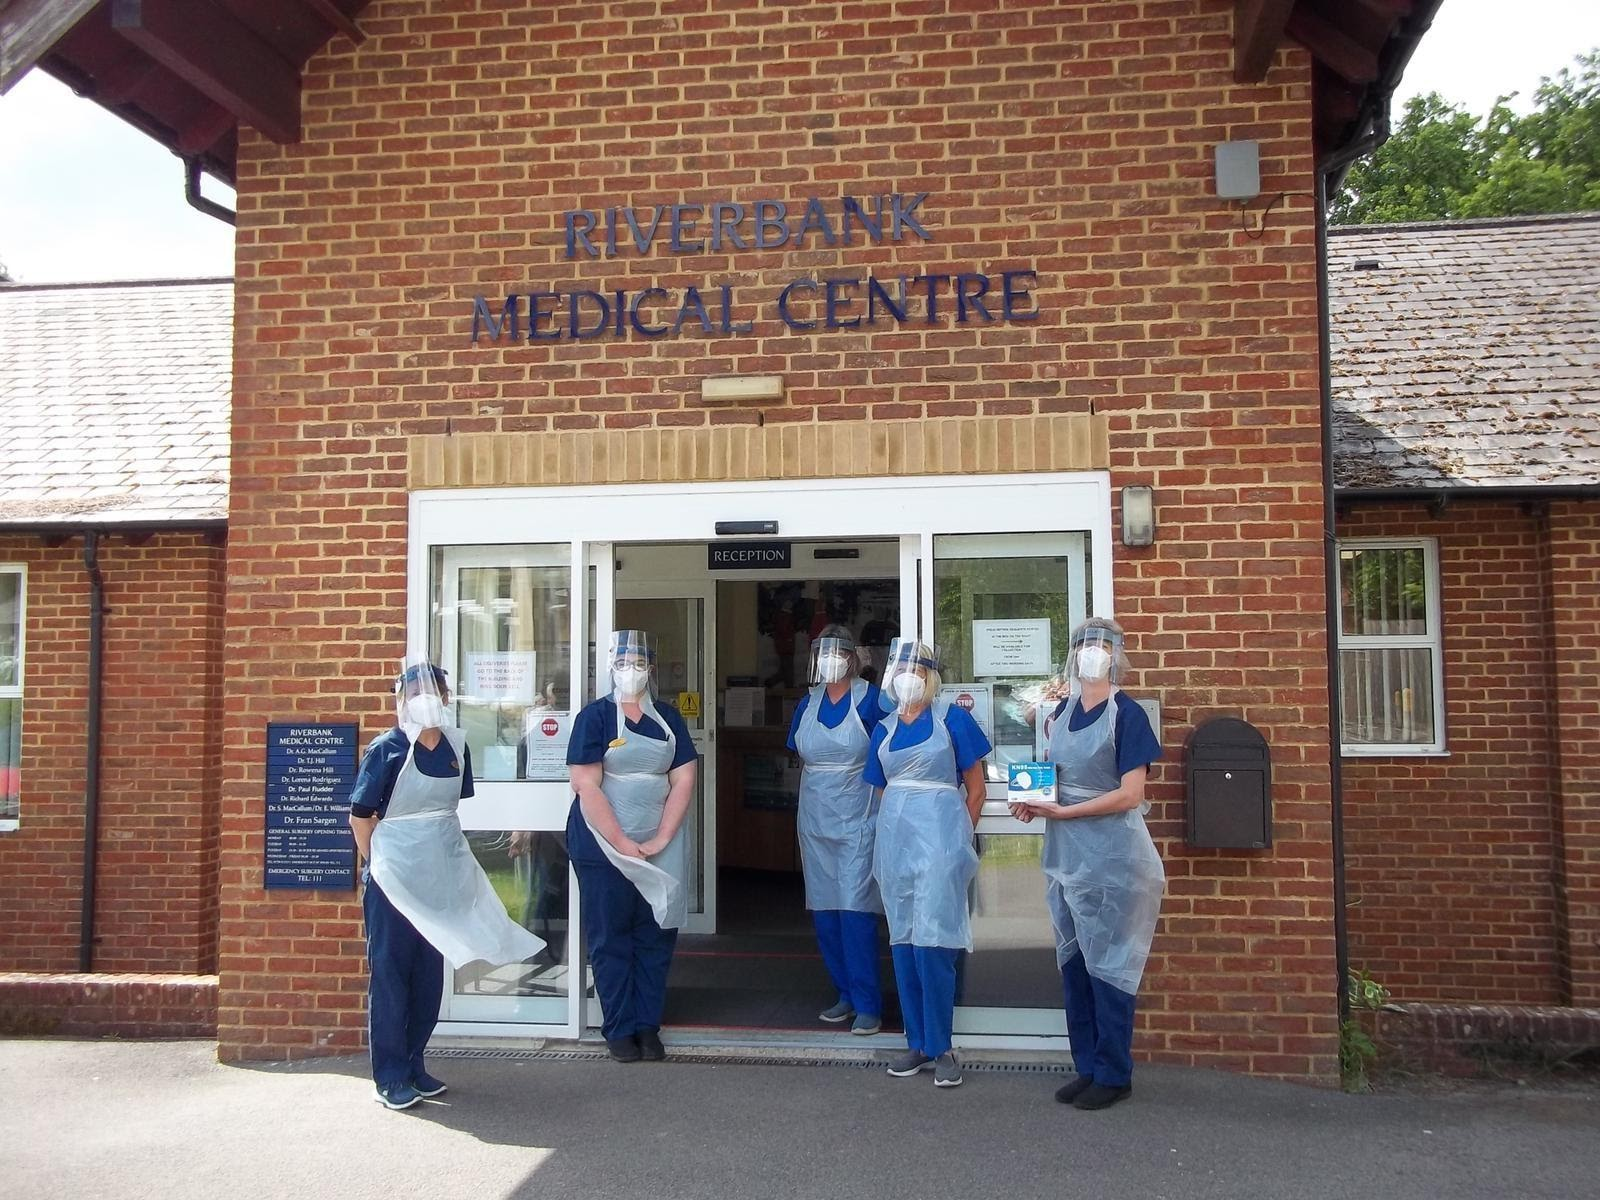 Imperial Corporate Capital supports local care homes with PPE